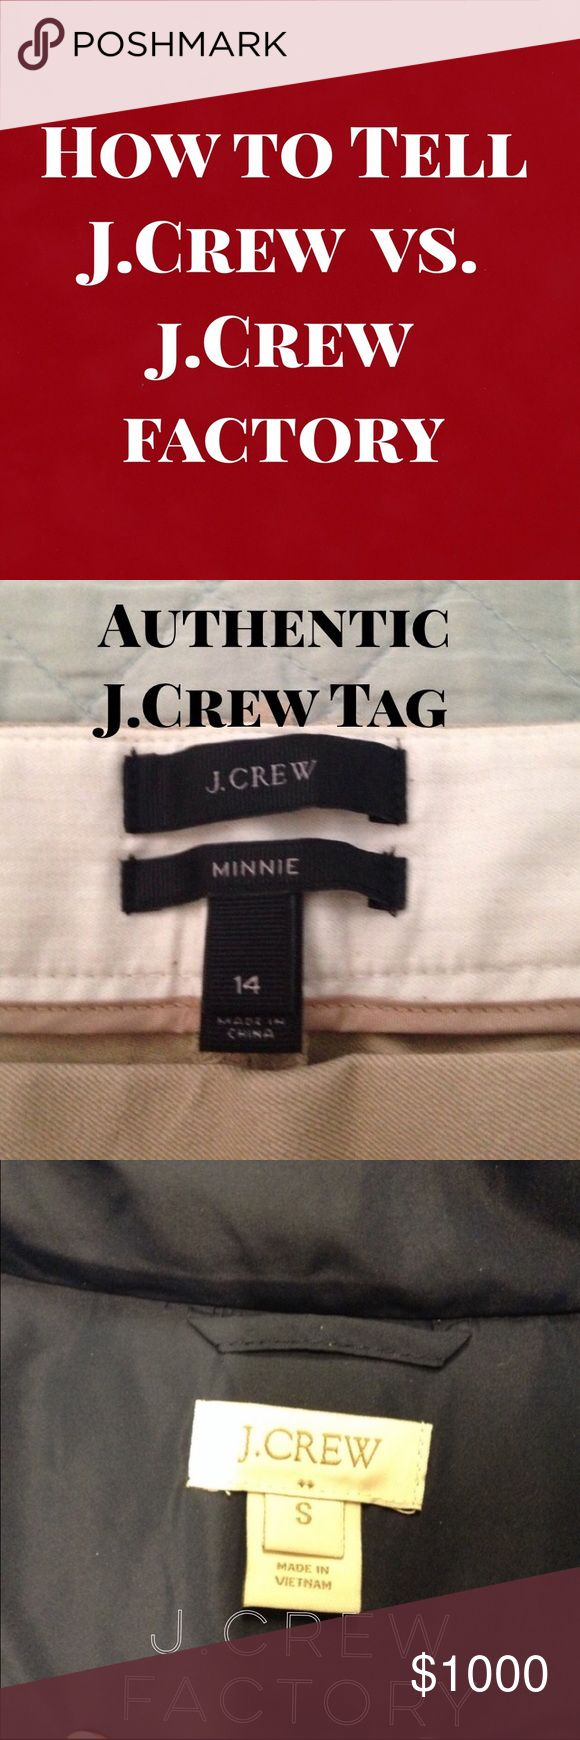 J.Crew vs. J.Crew Factory I have been seeing tons of Factory items being tagged as being J.Crew so I wanted to make this guide so people can see how easy it is to tell them apart! 1. J.Crew Factory has two dots underneath J.Crew as seen with the pictures and J.Crew doesn't! This also works with Ann Taylor LOFT and Banana Republic! J. Crew Other